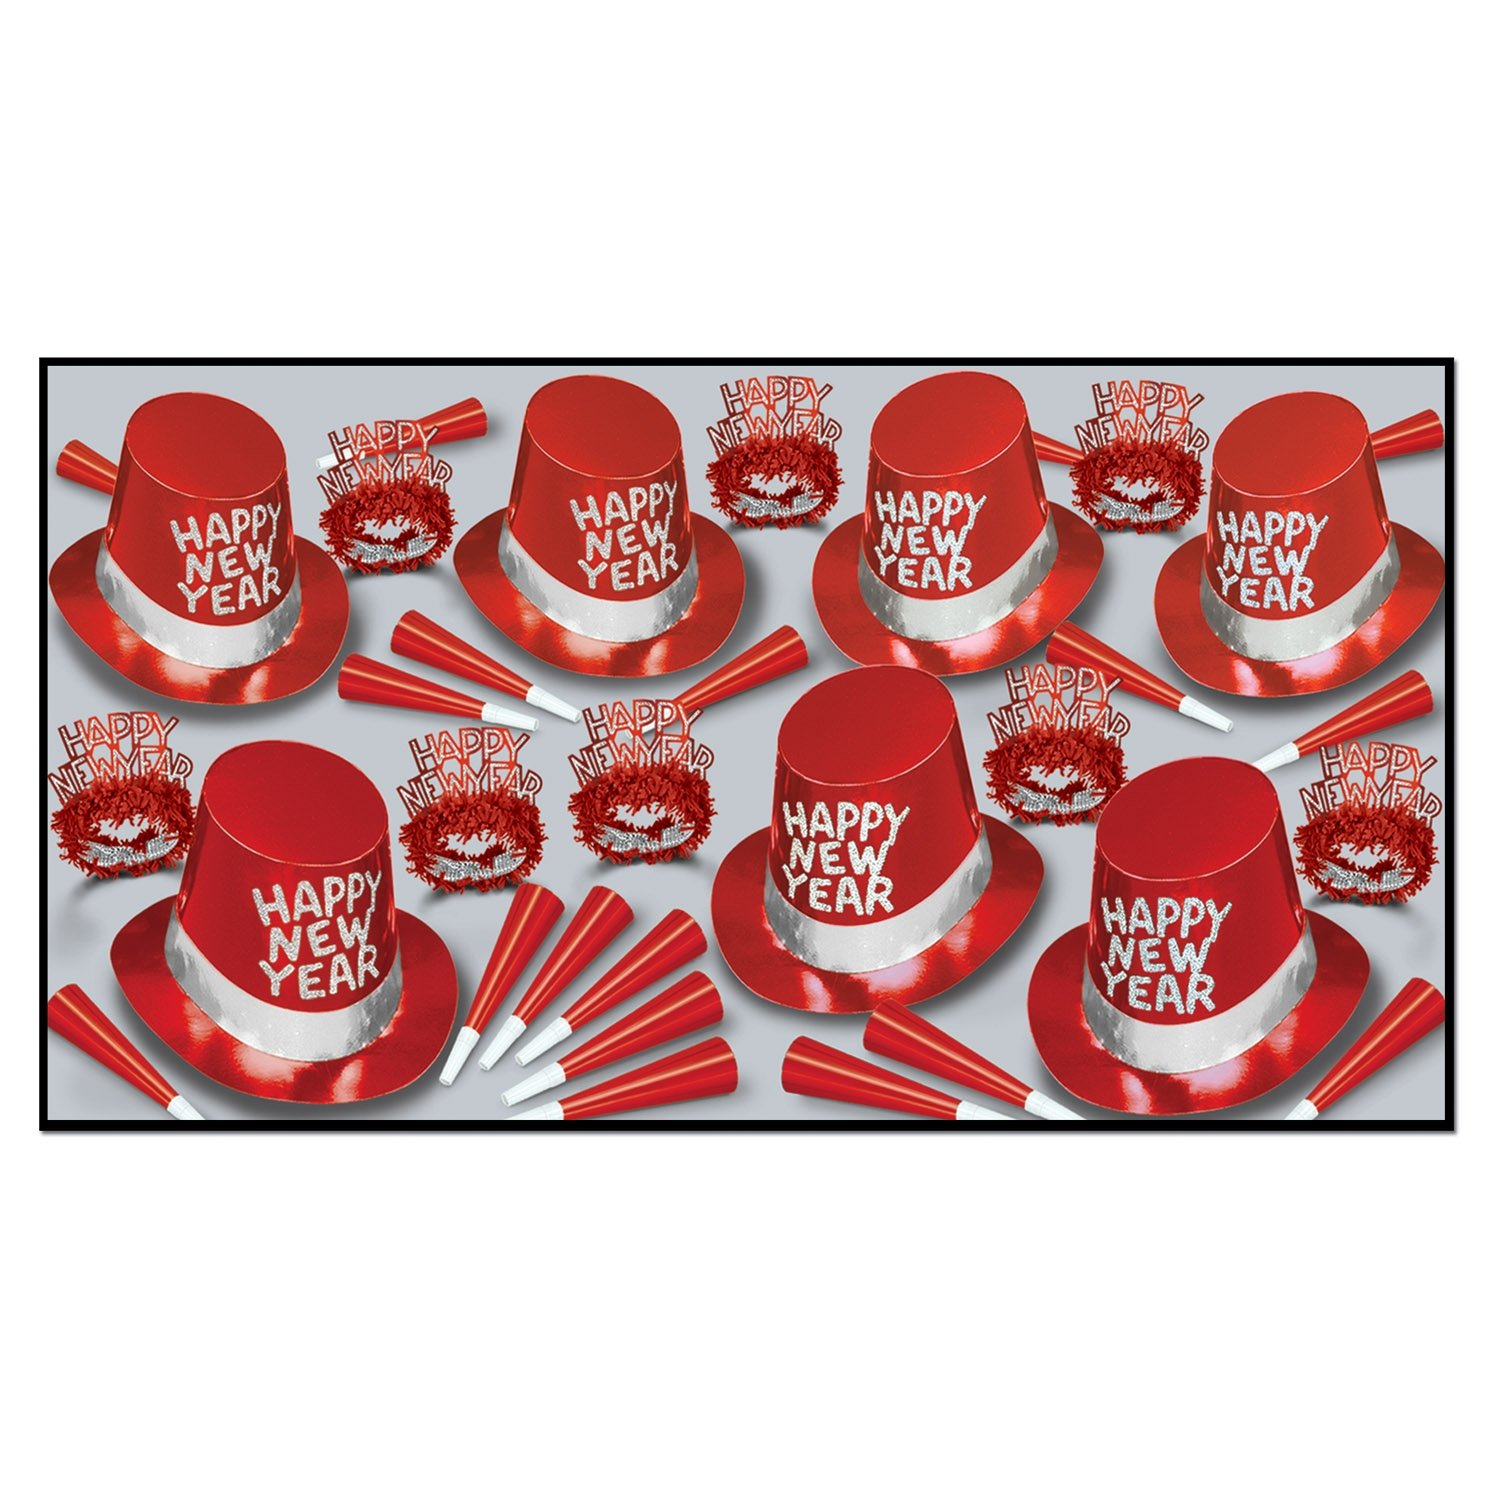 Beistle 88259-R50 Simply Red Party Favors, 1 Surtido por Paquete